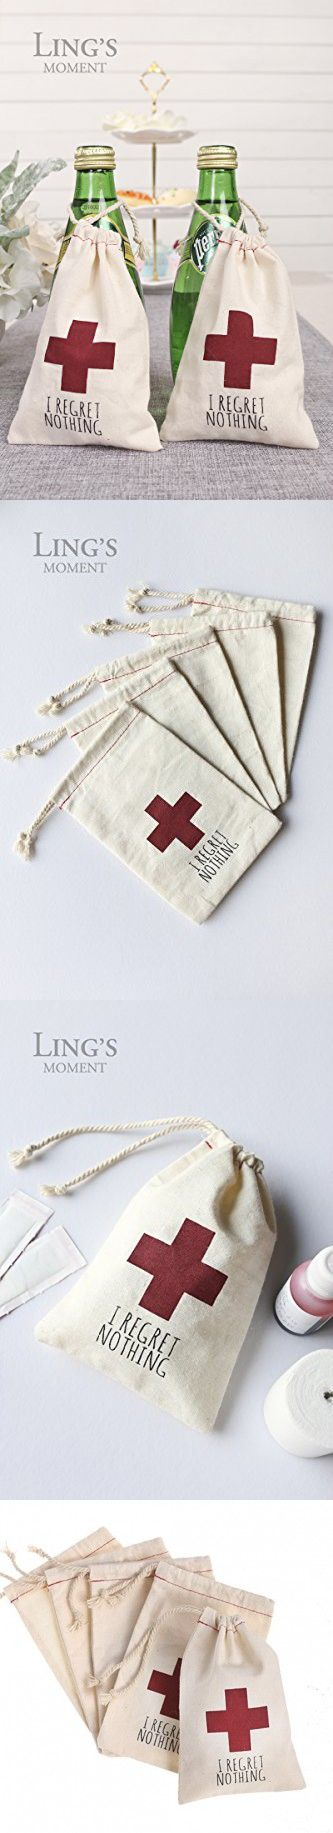 """Ling's moment 10 pcs 4""""x6"""" Muslin Hangover Kit Favor Bags I Regret Nothing Favor Bags Recovery Kit Survival Kit First Aid Kit Favor Bags for Bachelorette Annual Party Christmas New Years"""